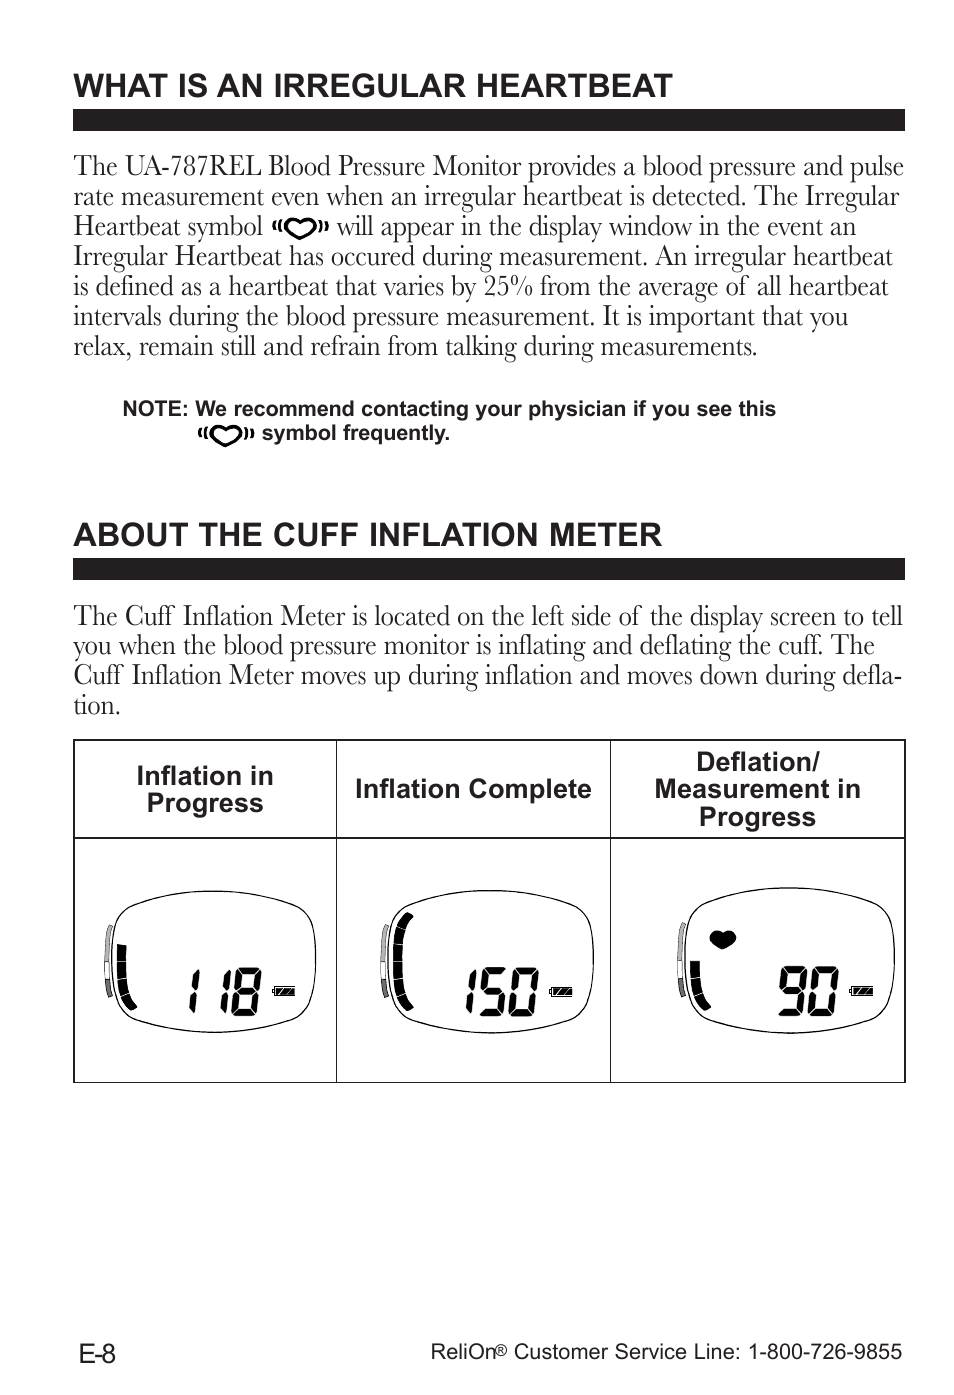 What Is An Irregular Heartbeat About The Cuff Inflation Meter